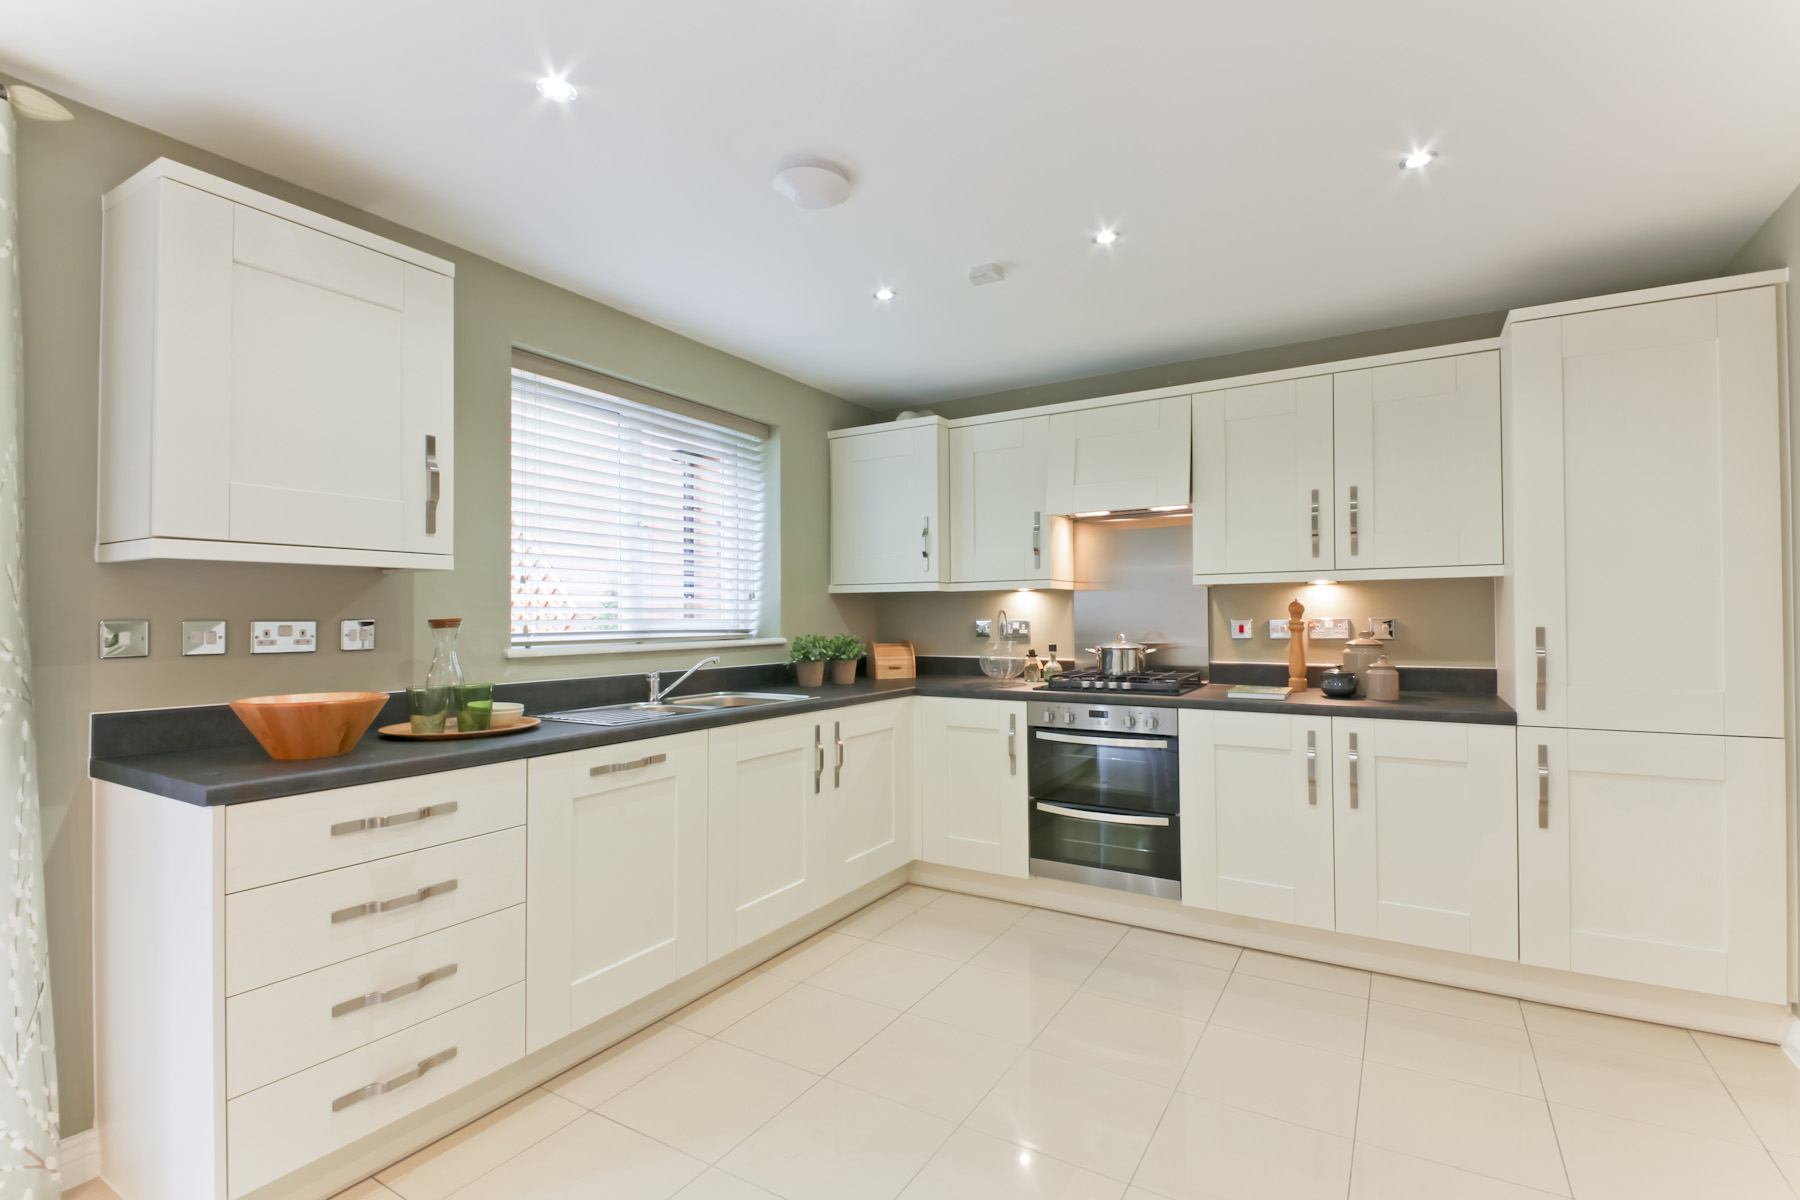 TW Exeter - Sherford - The Birch example kitchen